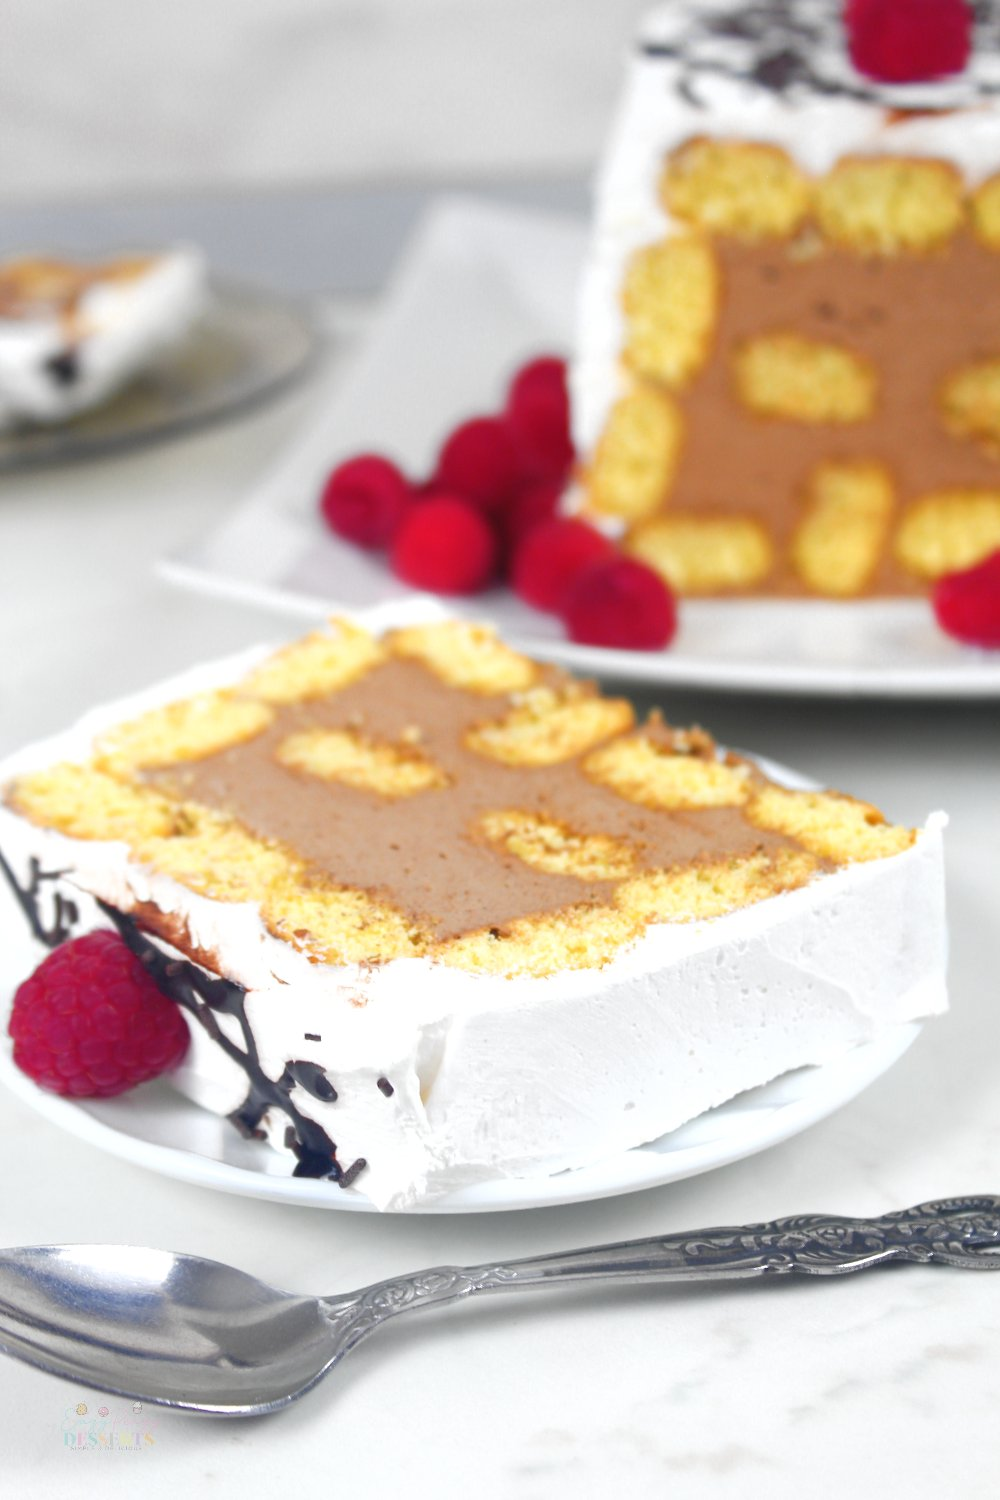 Easy chocolate mousse cake